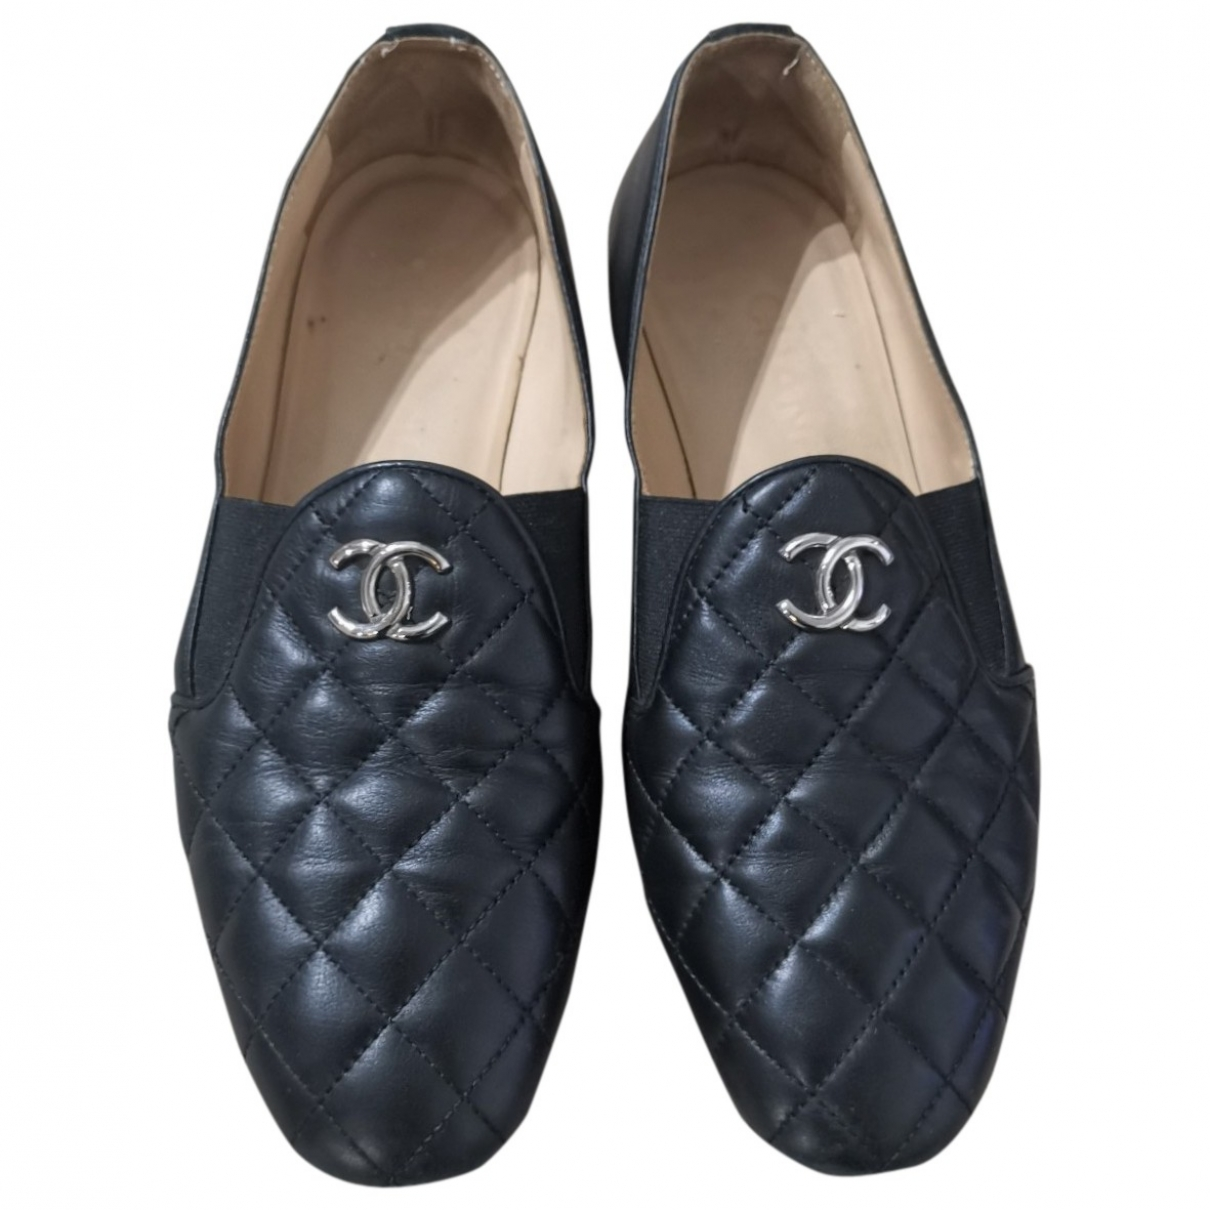 Chanel \N Black Leather Flats for Women 36.5 EU